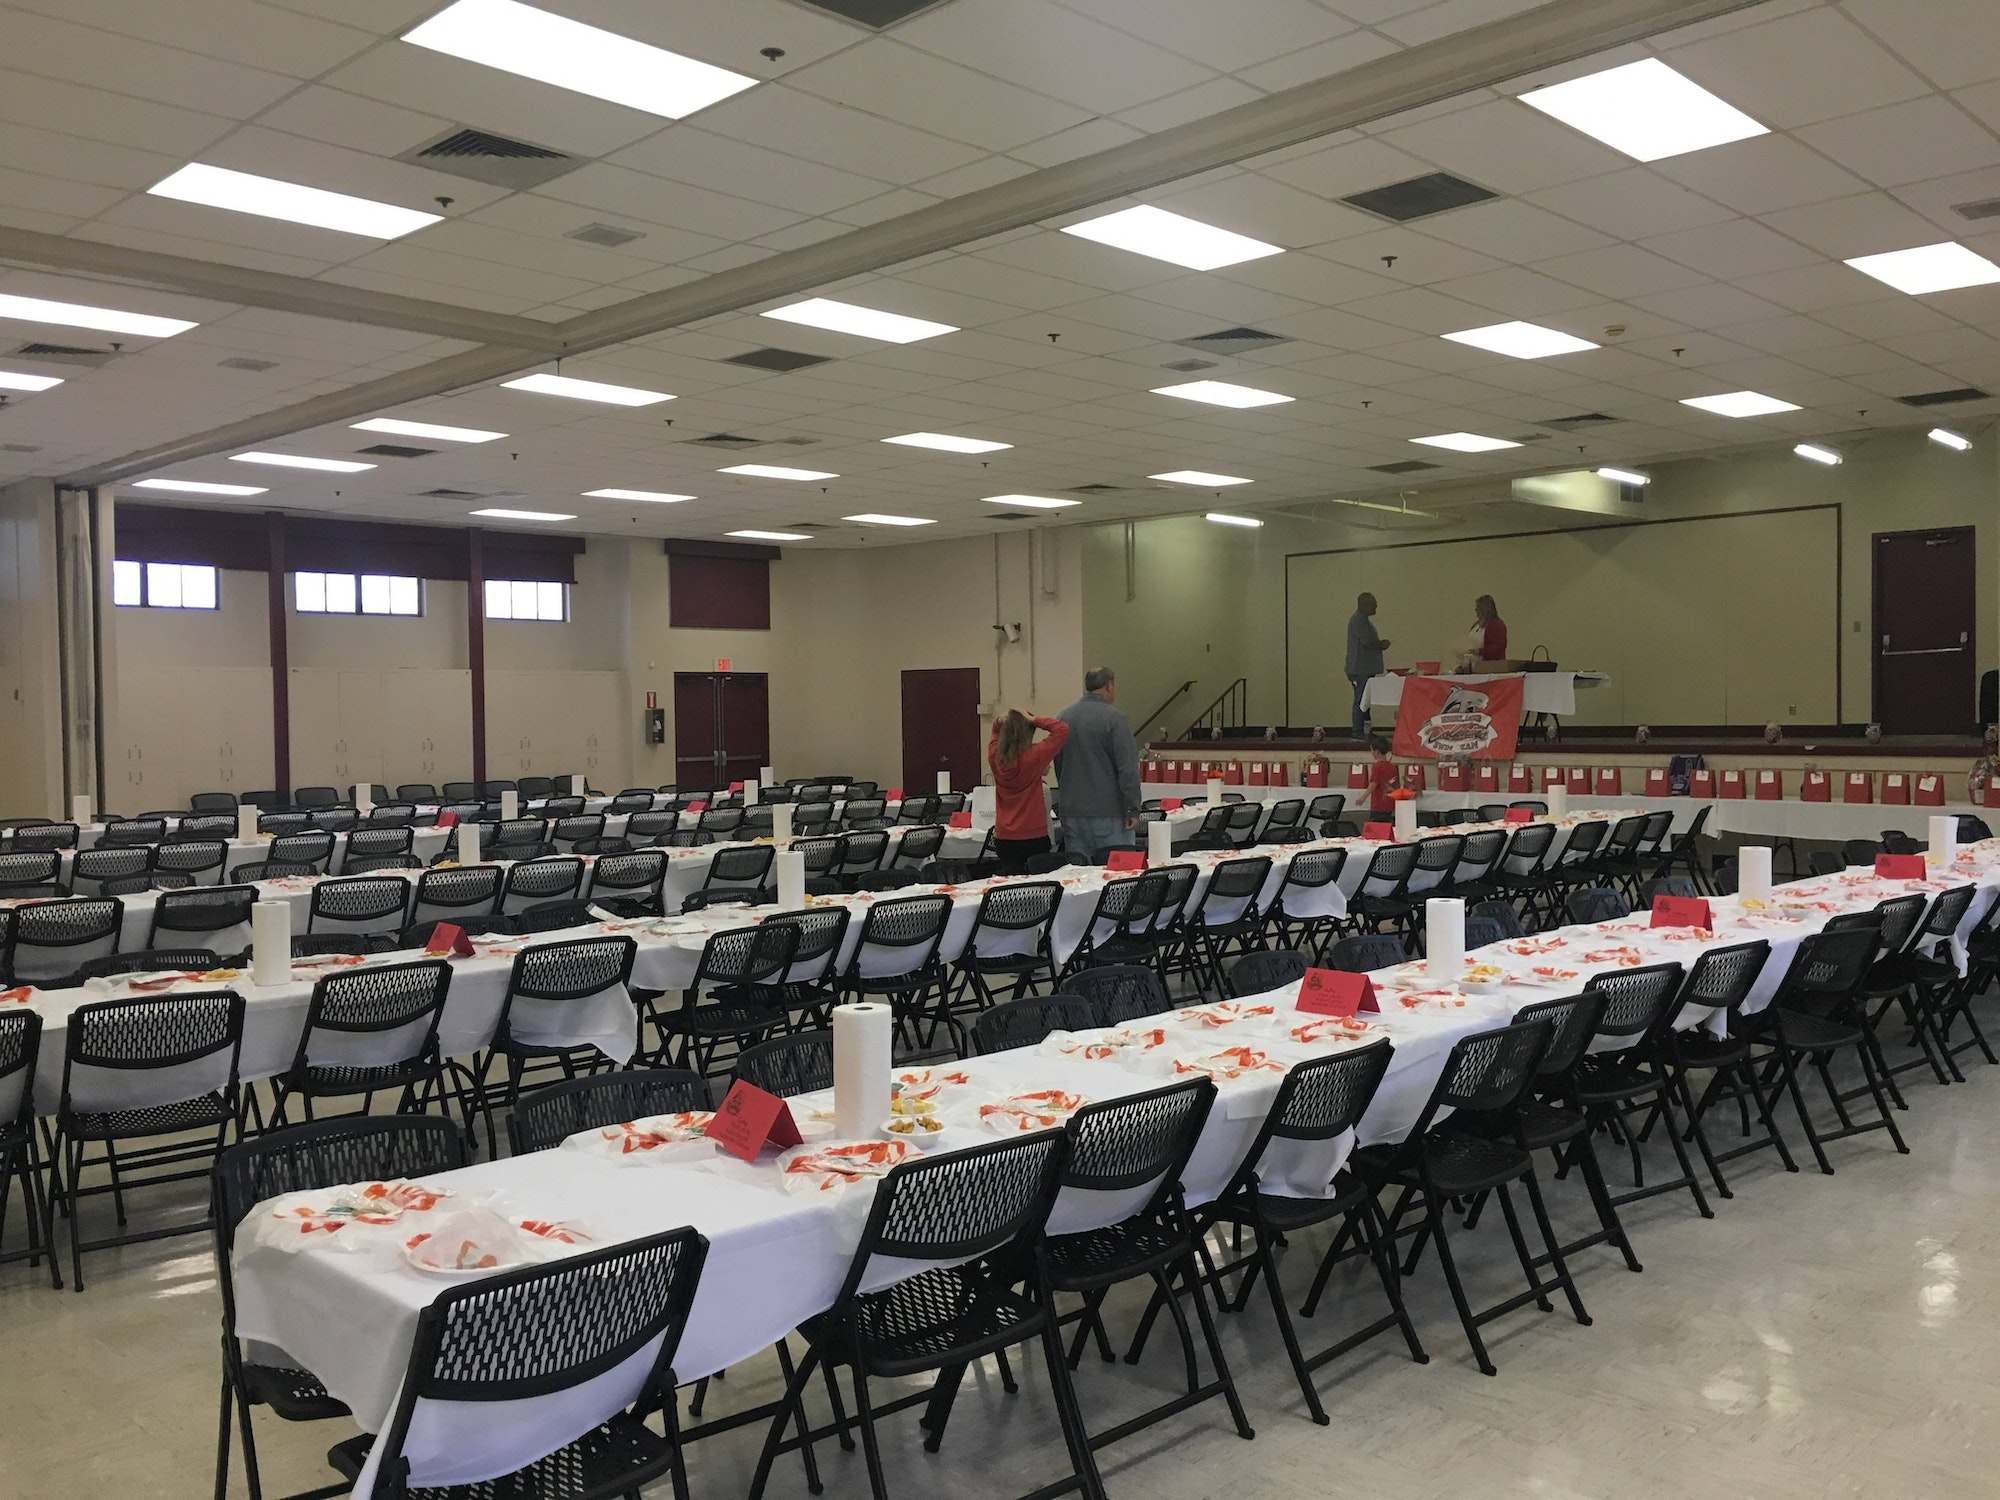 Crab Feed Event at the Kay F. Dahill Community Center